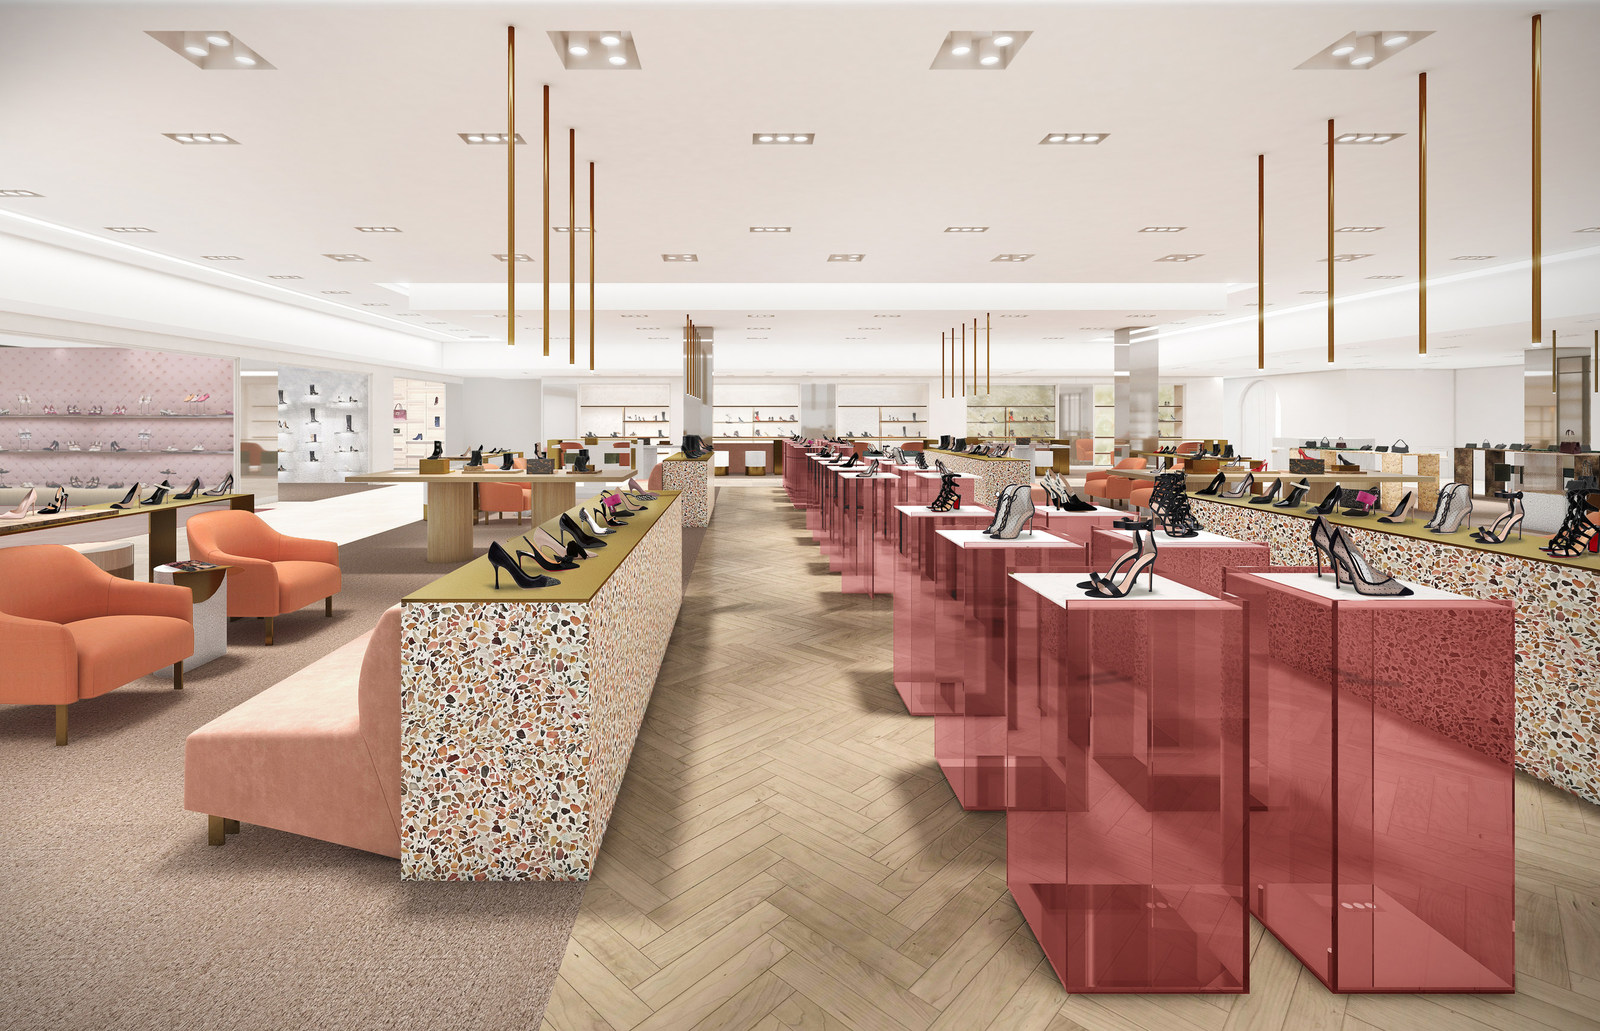 Future 50 Bloor Street West women's shoe hall on the 'mezzanine level', featuring boutiques for Christian Louboutin, Prada, Gucci and Christian Dior. Rendering: Holt Renfrew